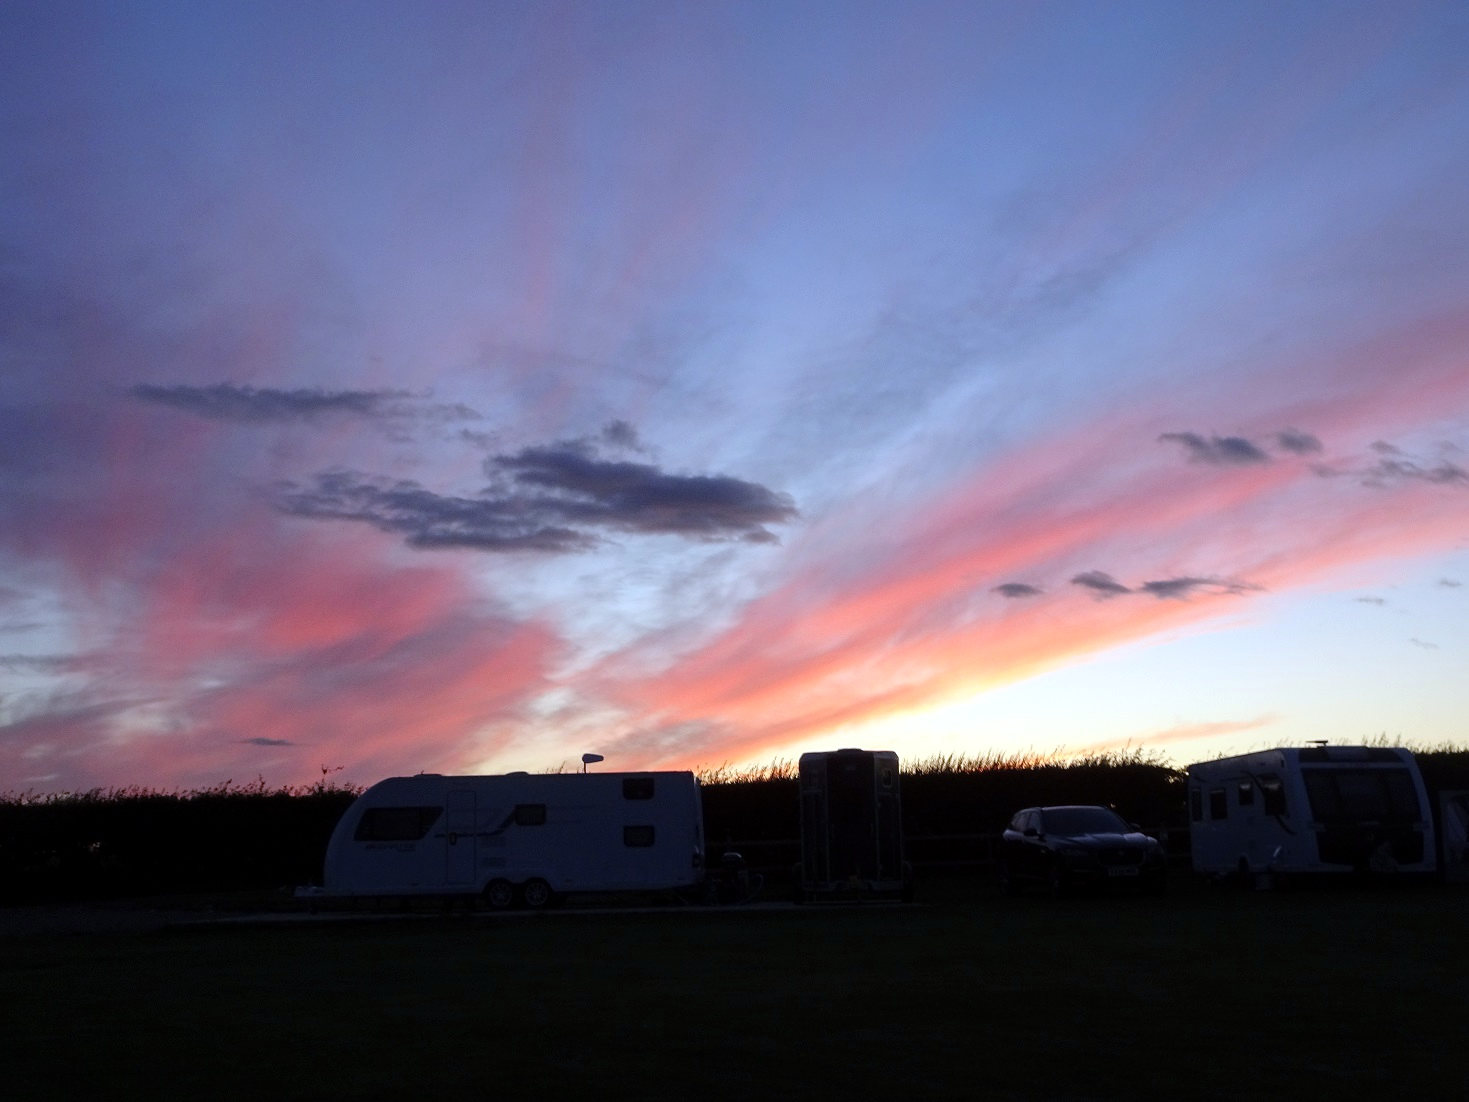 sunset at Runswick Bay Campsite